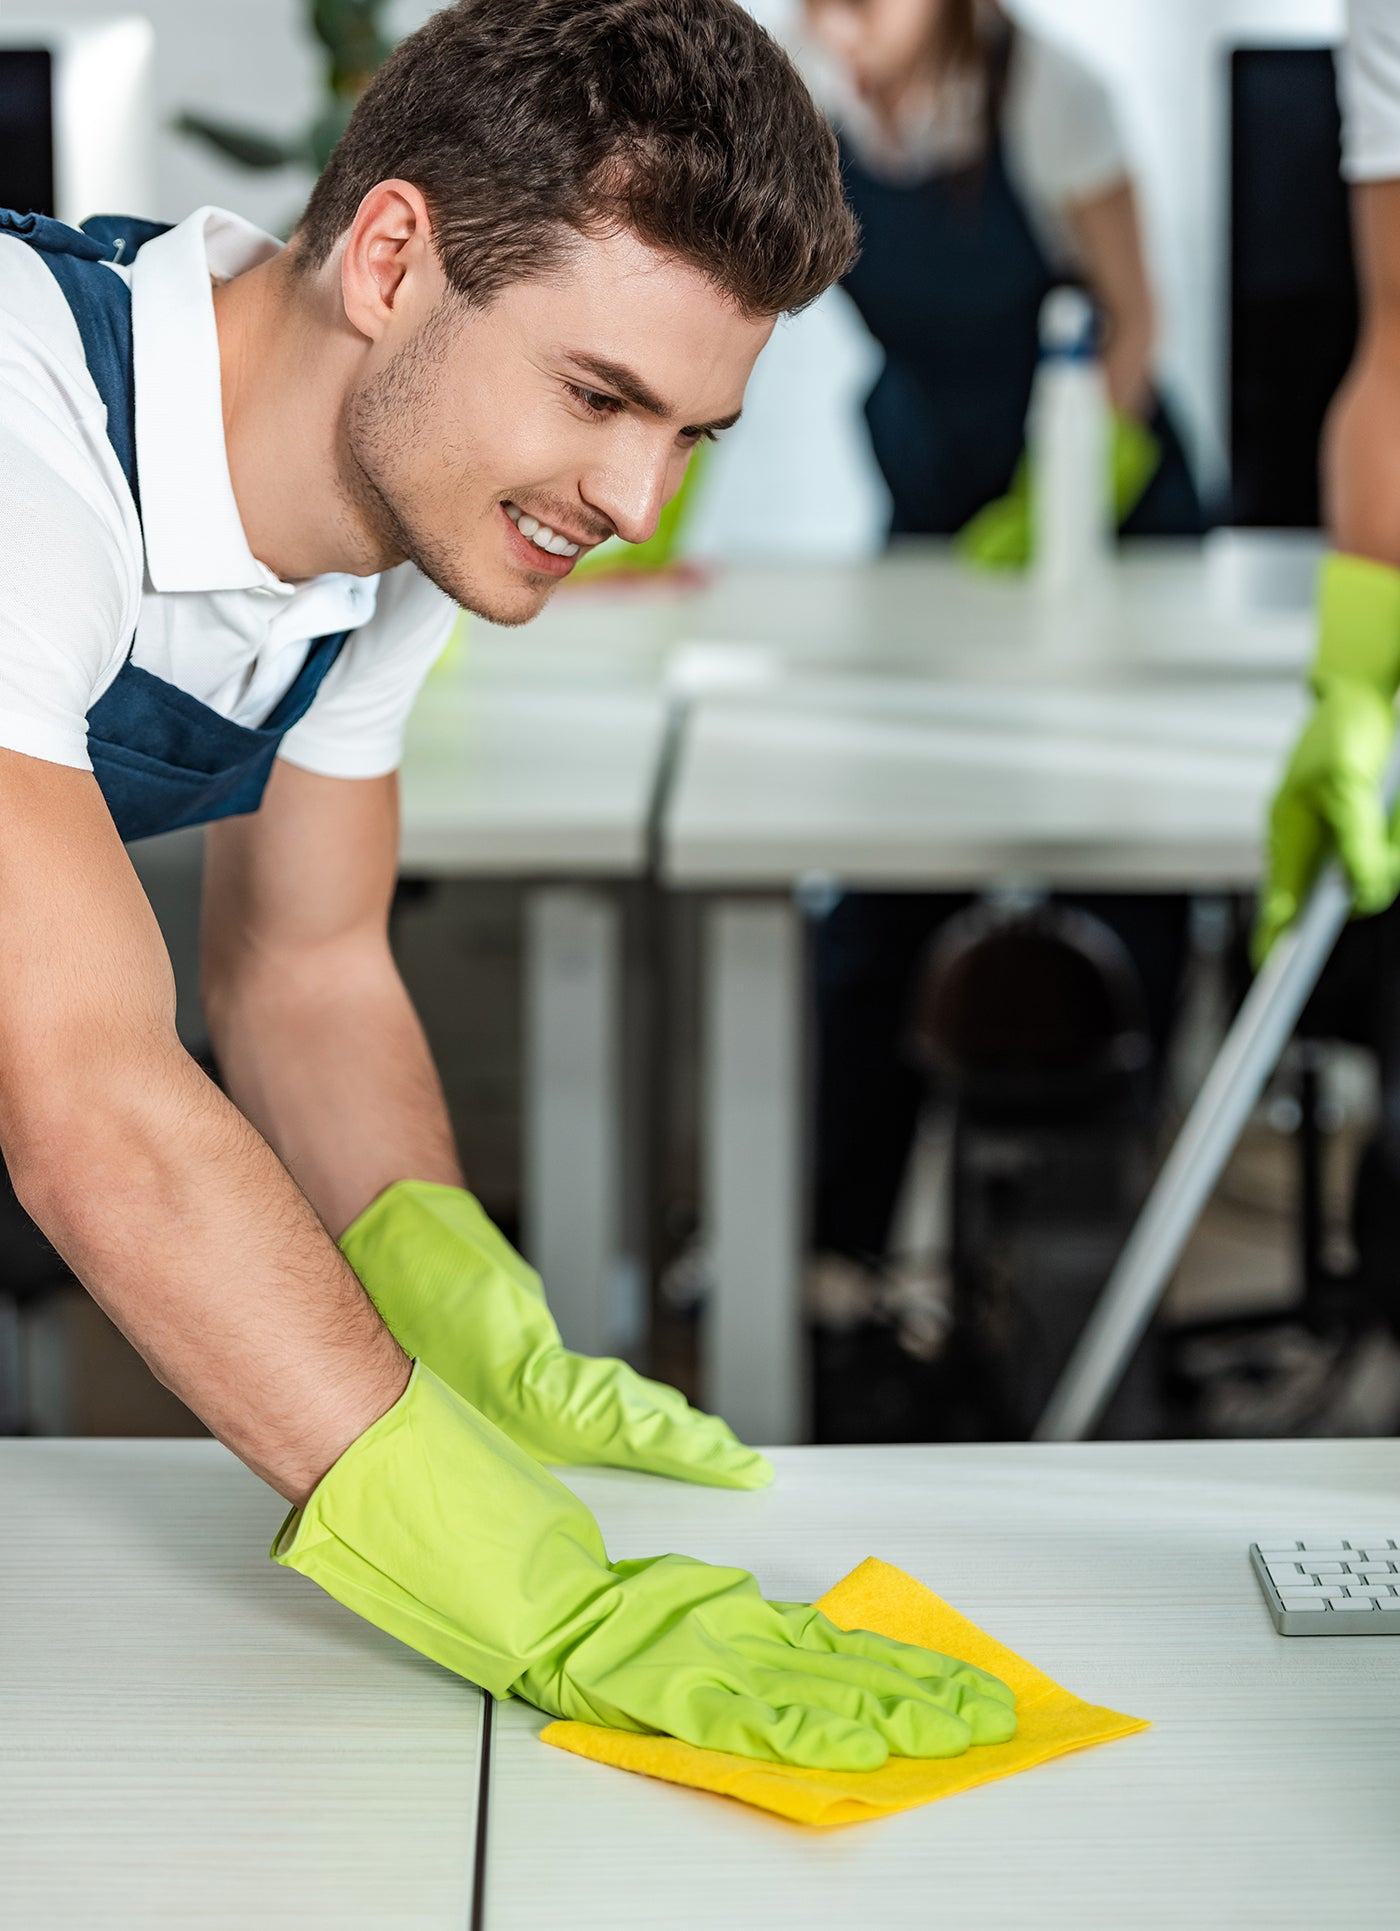 Man in gloves disinfecting desk with cloth